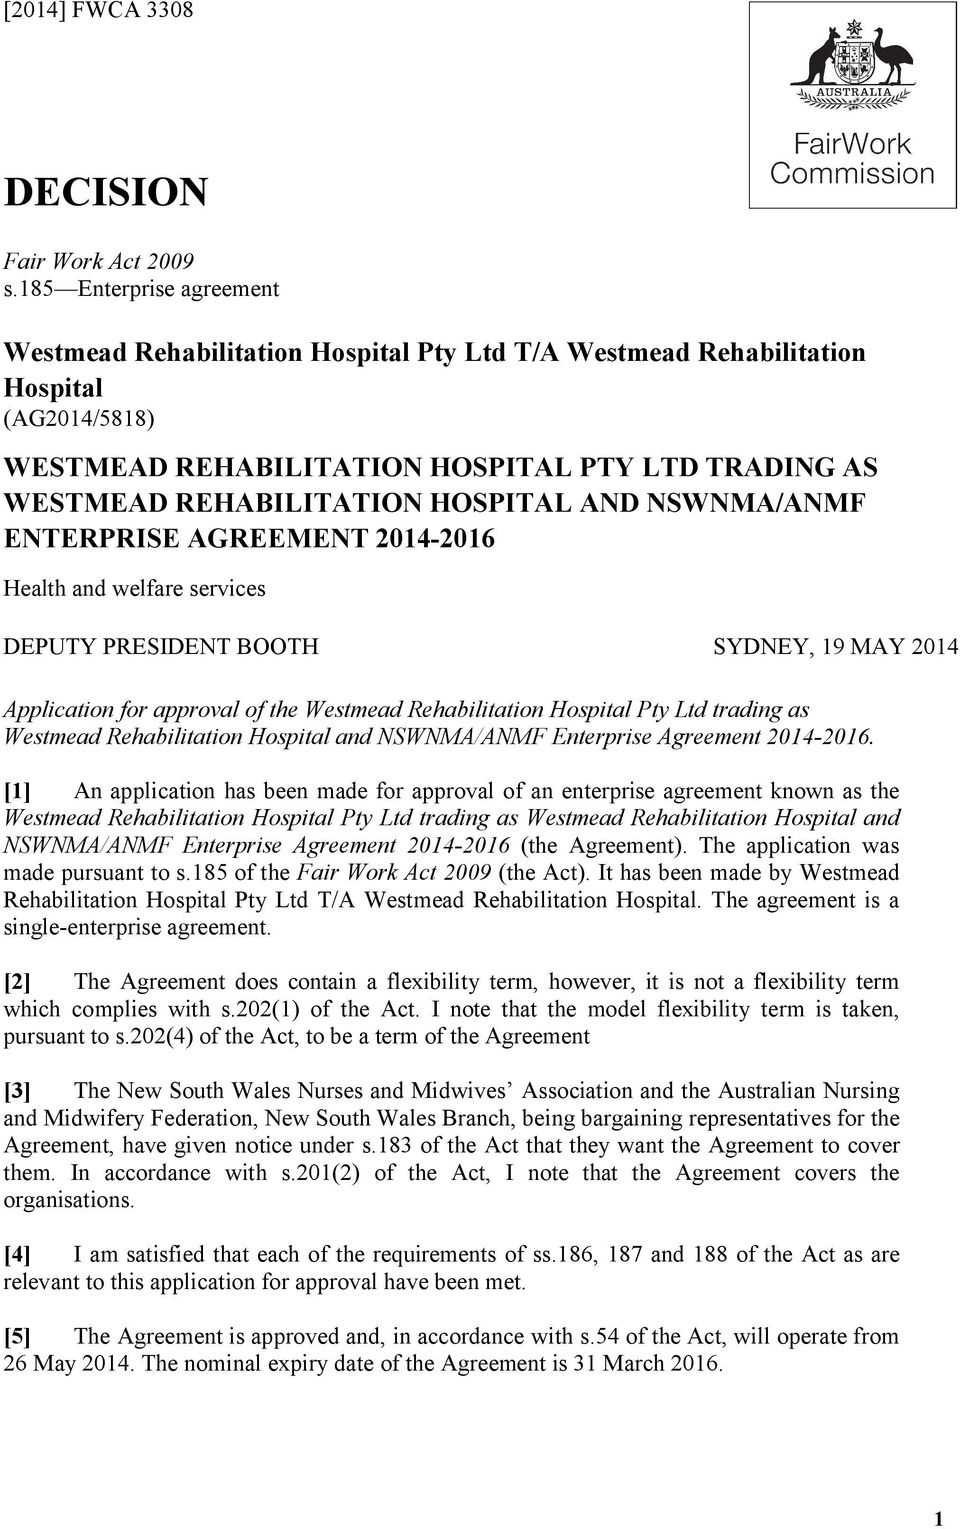 HOSPITAL AND NSWNMA/ANMF ENTERPRISE AGREEMENT 2014-2016 Health and welfare services DEPUTY PRESIDENT BOOTH SYDNEY, 19 MAY 2014 Application for approval of the Westmead Rehabilitation Hospital Pty Ltd